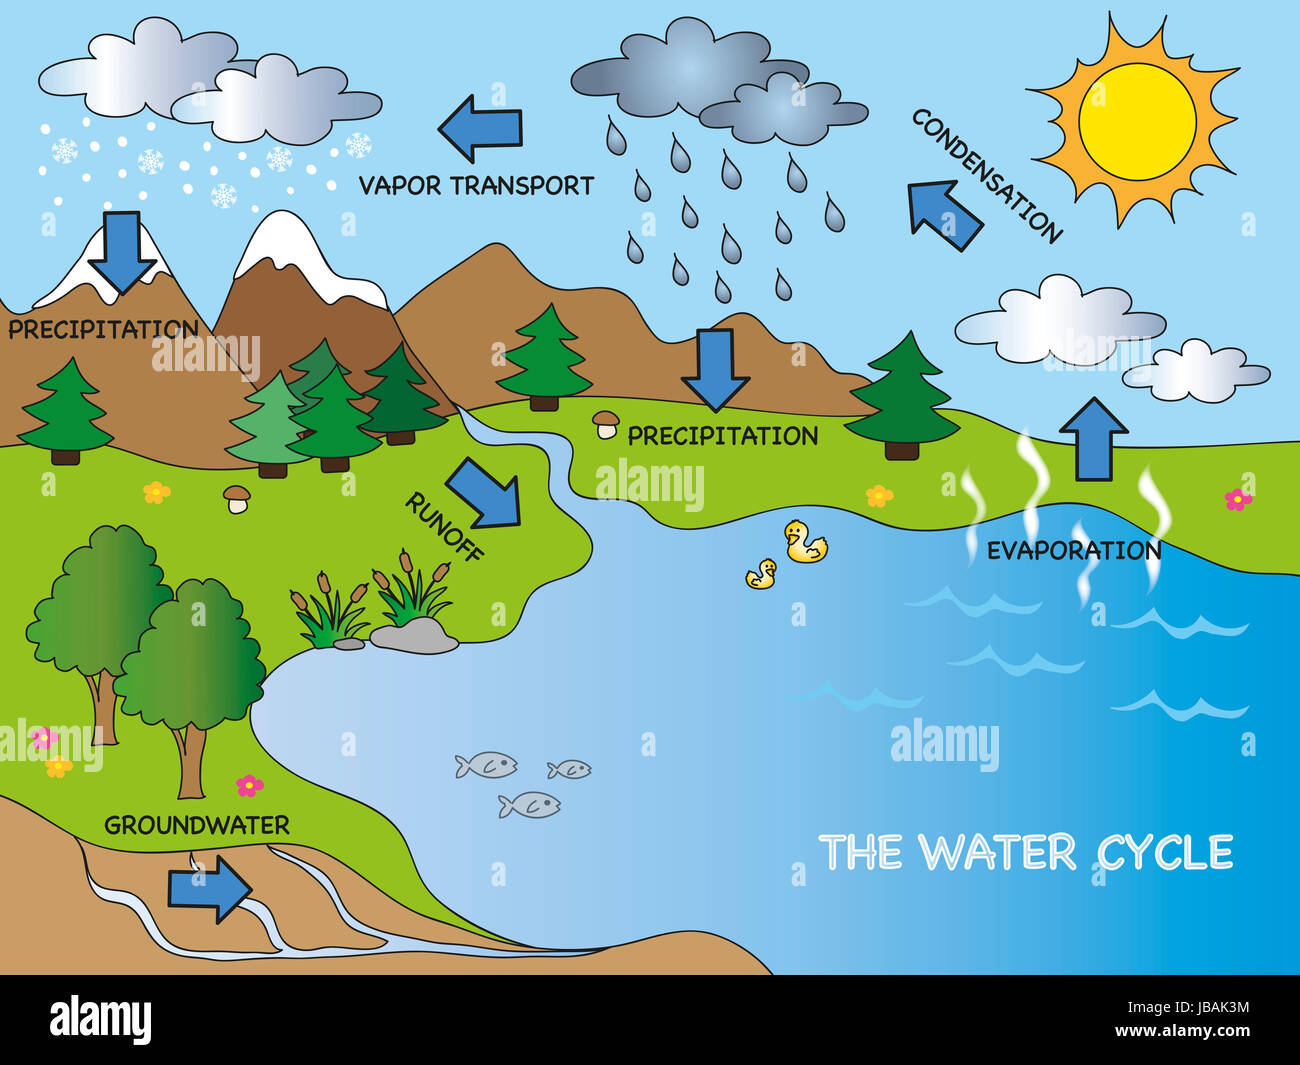 Water Cycle Diagram For High School